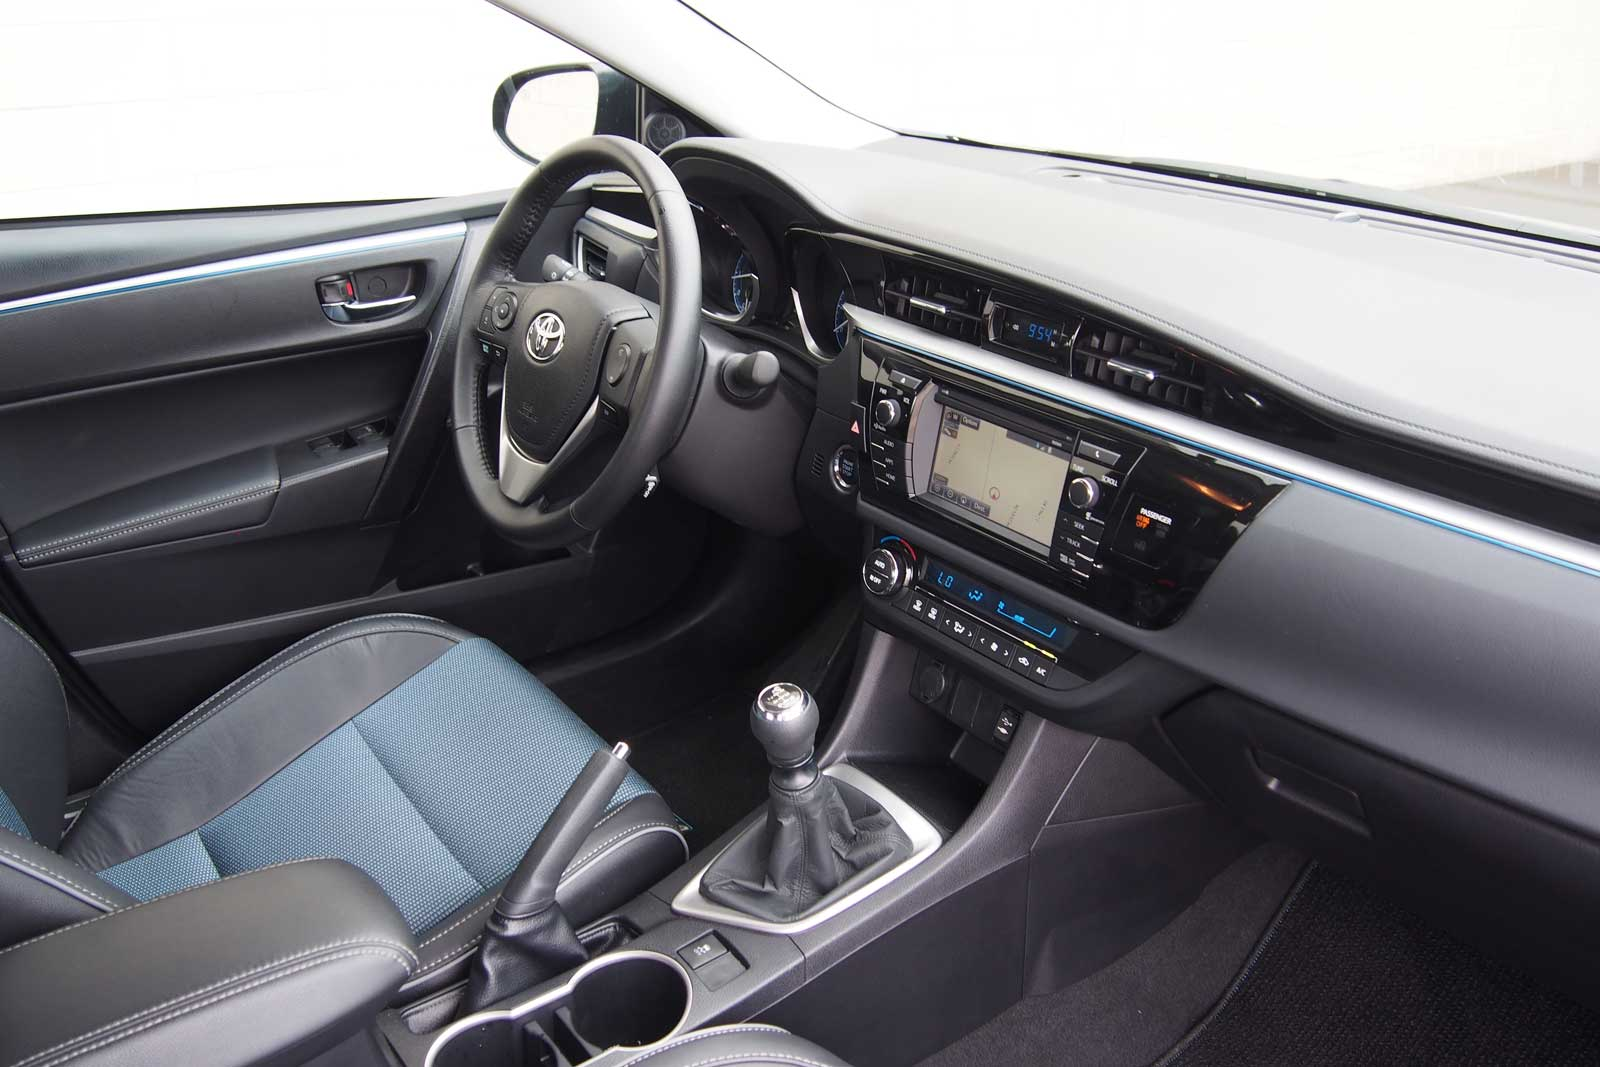 2016 Toyota Corolla S Plus Review Schematic Interior 04